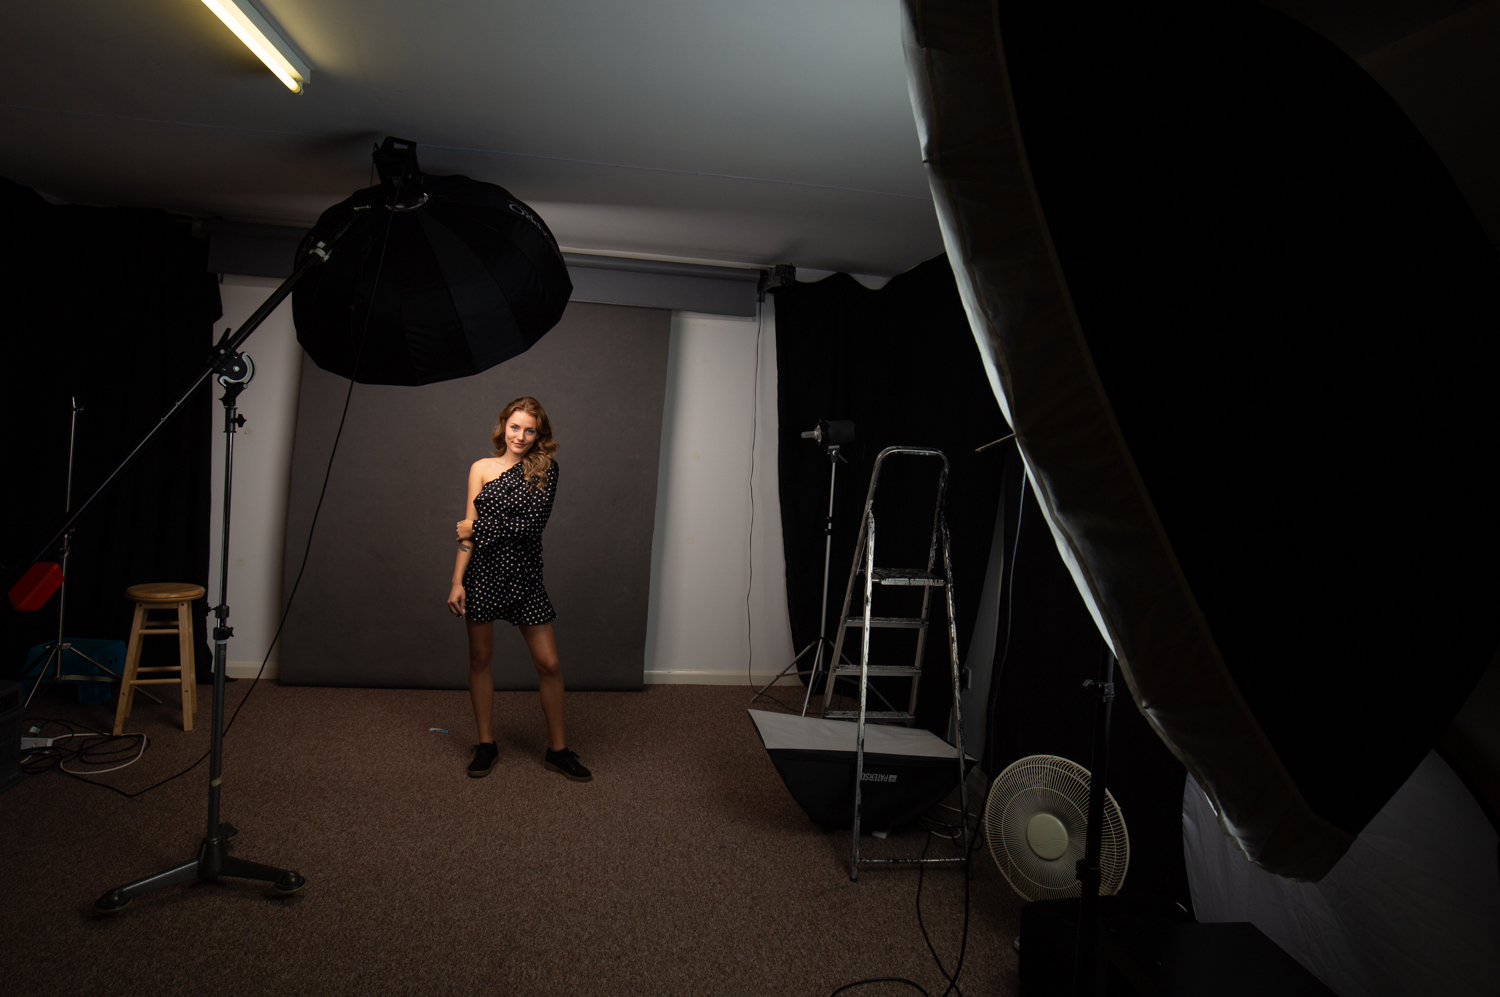 Image: Using a secondary light source as fill is going to be your most versatile option.